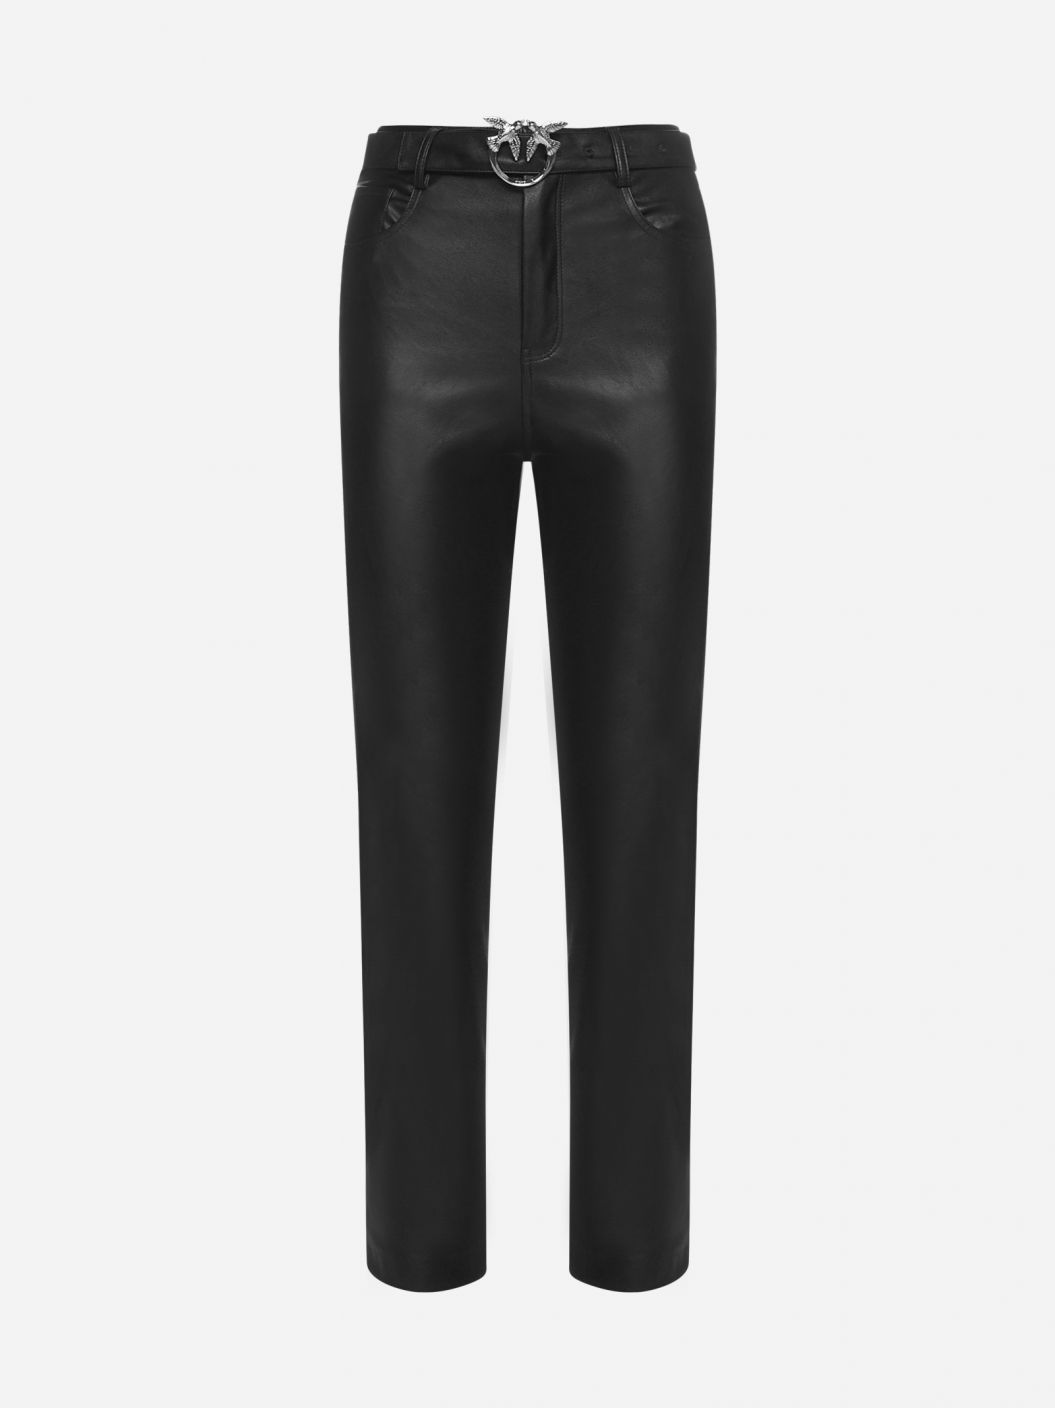 Susan belted faux-leather trousers